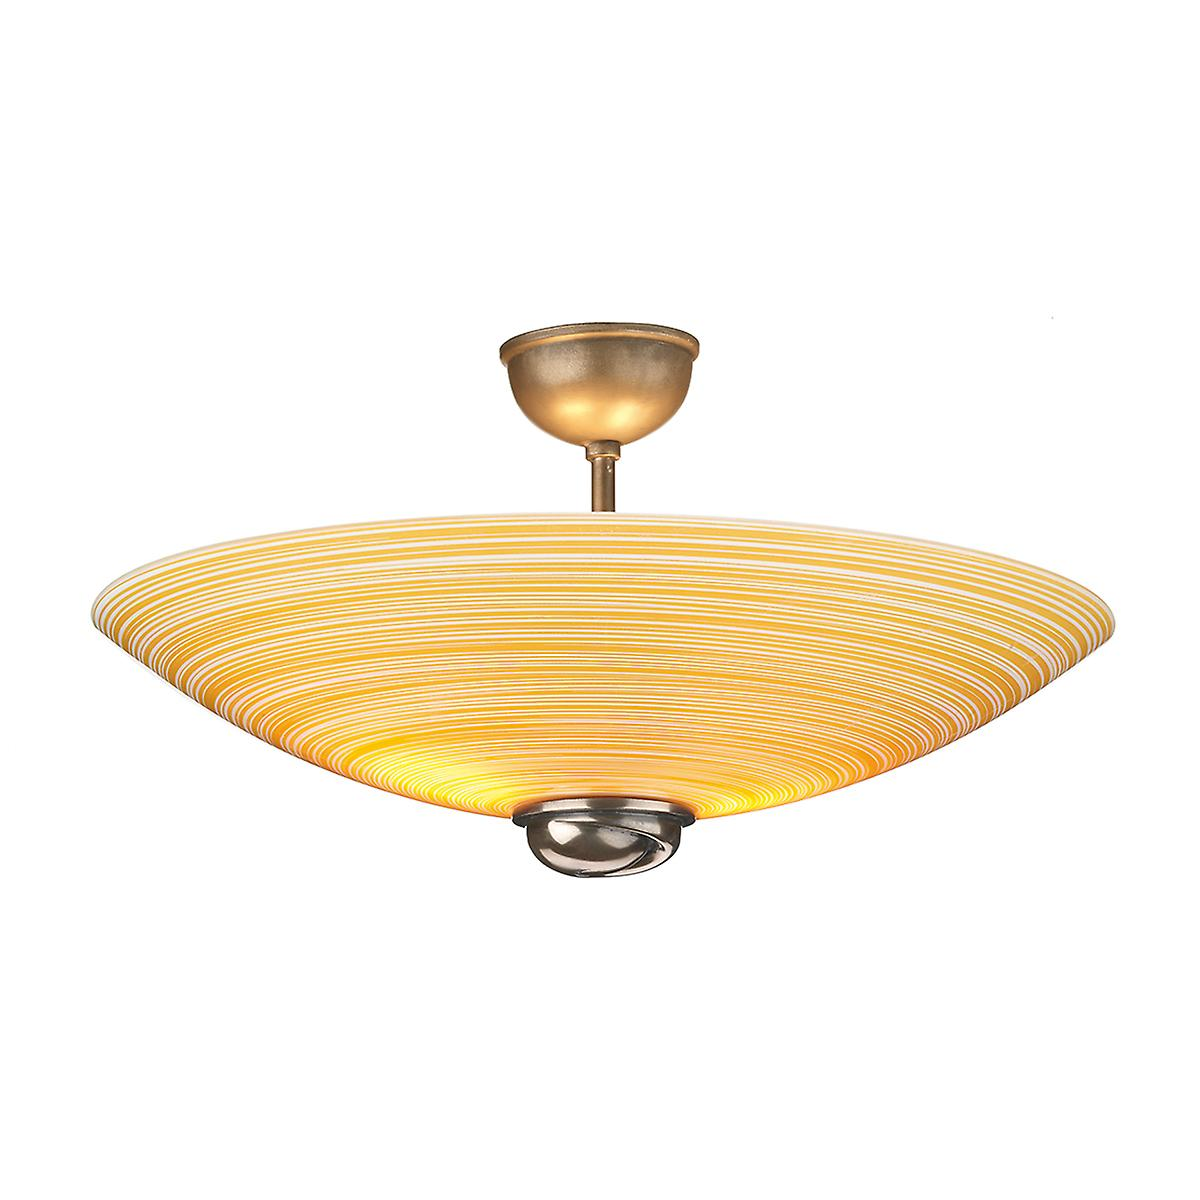 David Hunt SWF5863 Swirl Semi Flush Pendant In Bronze With Amber Glass